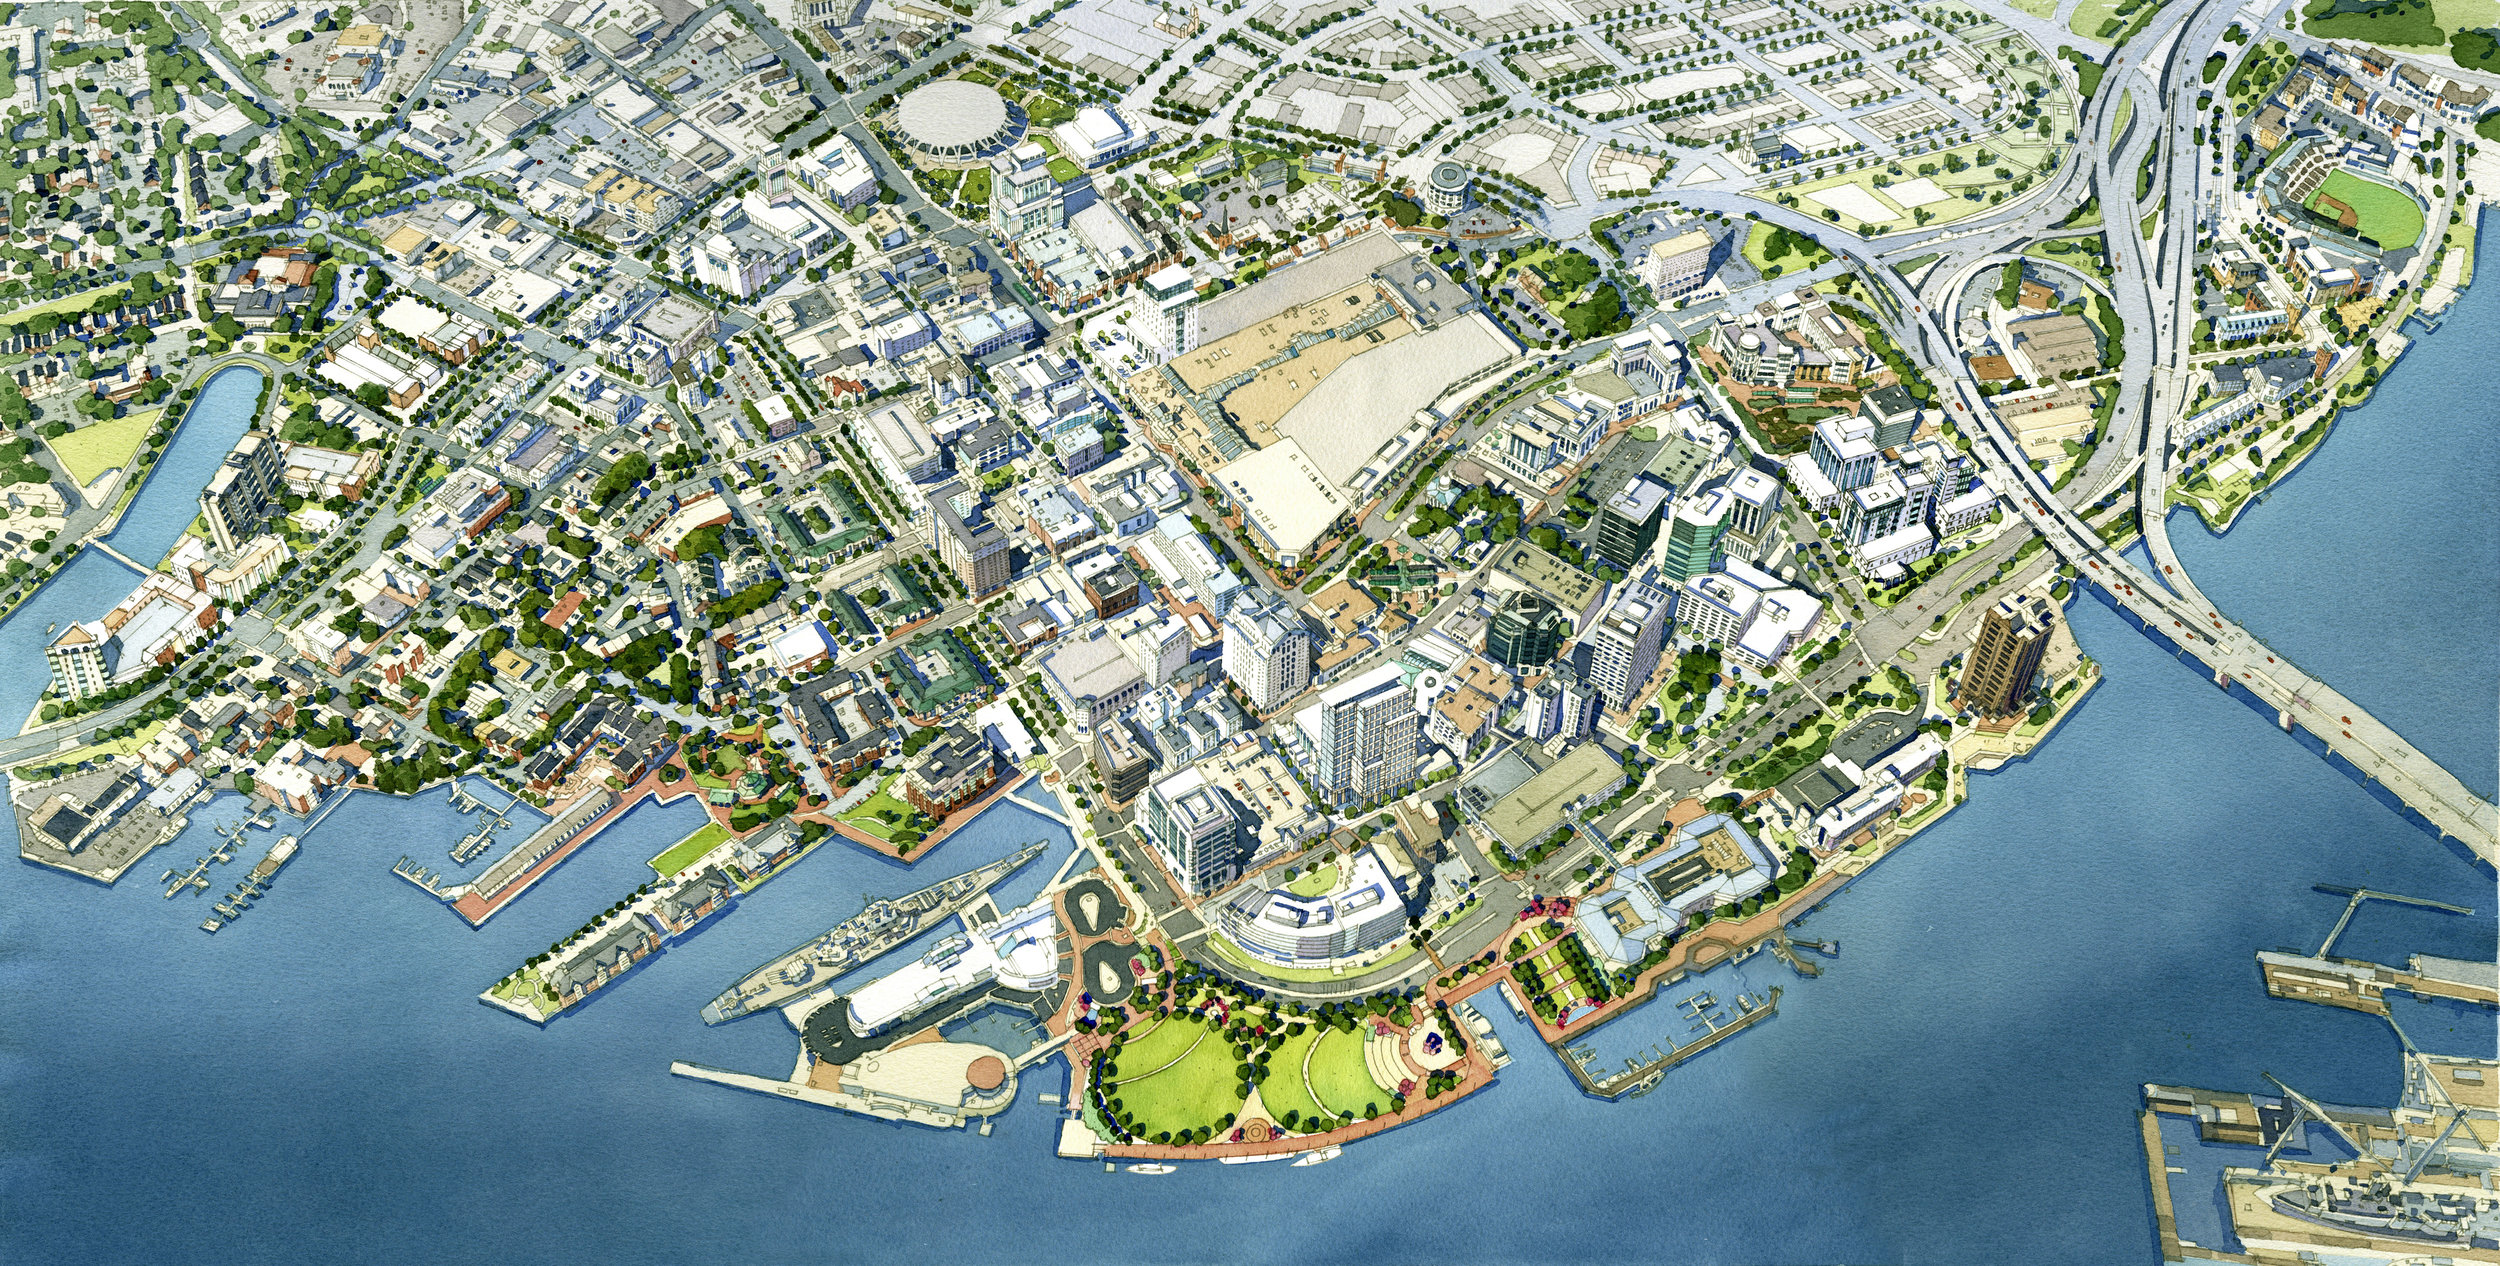 Downtown norfolk revitalization - norfolk, virginia